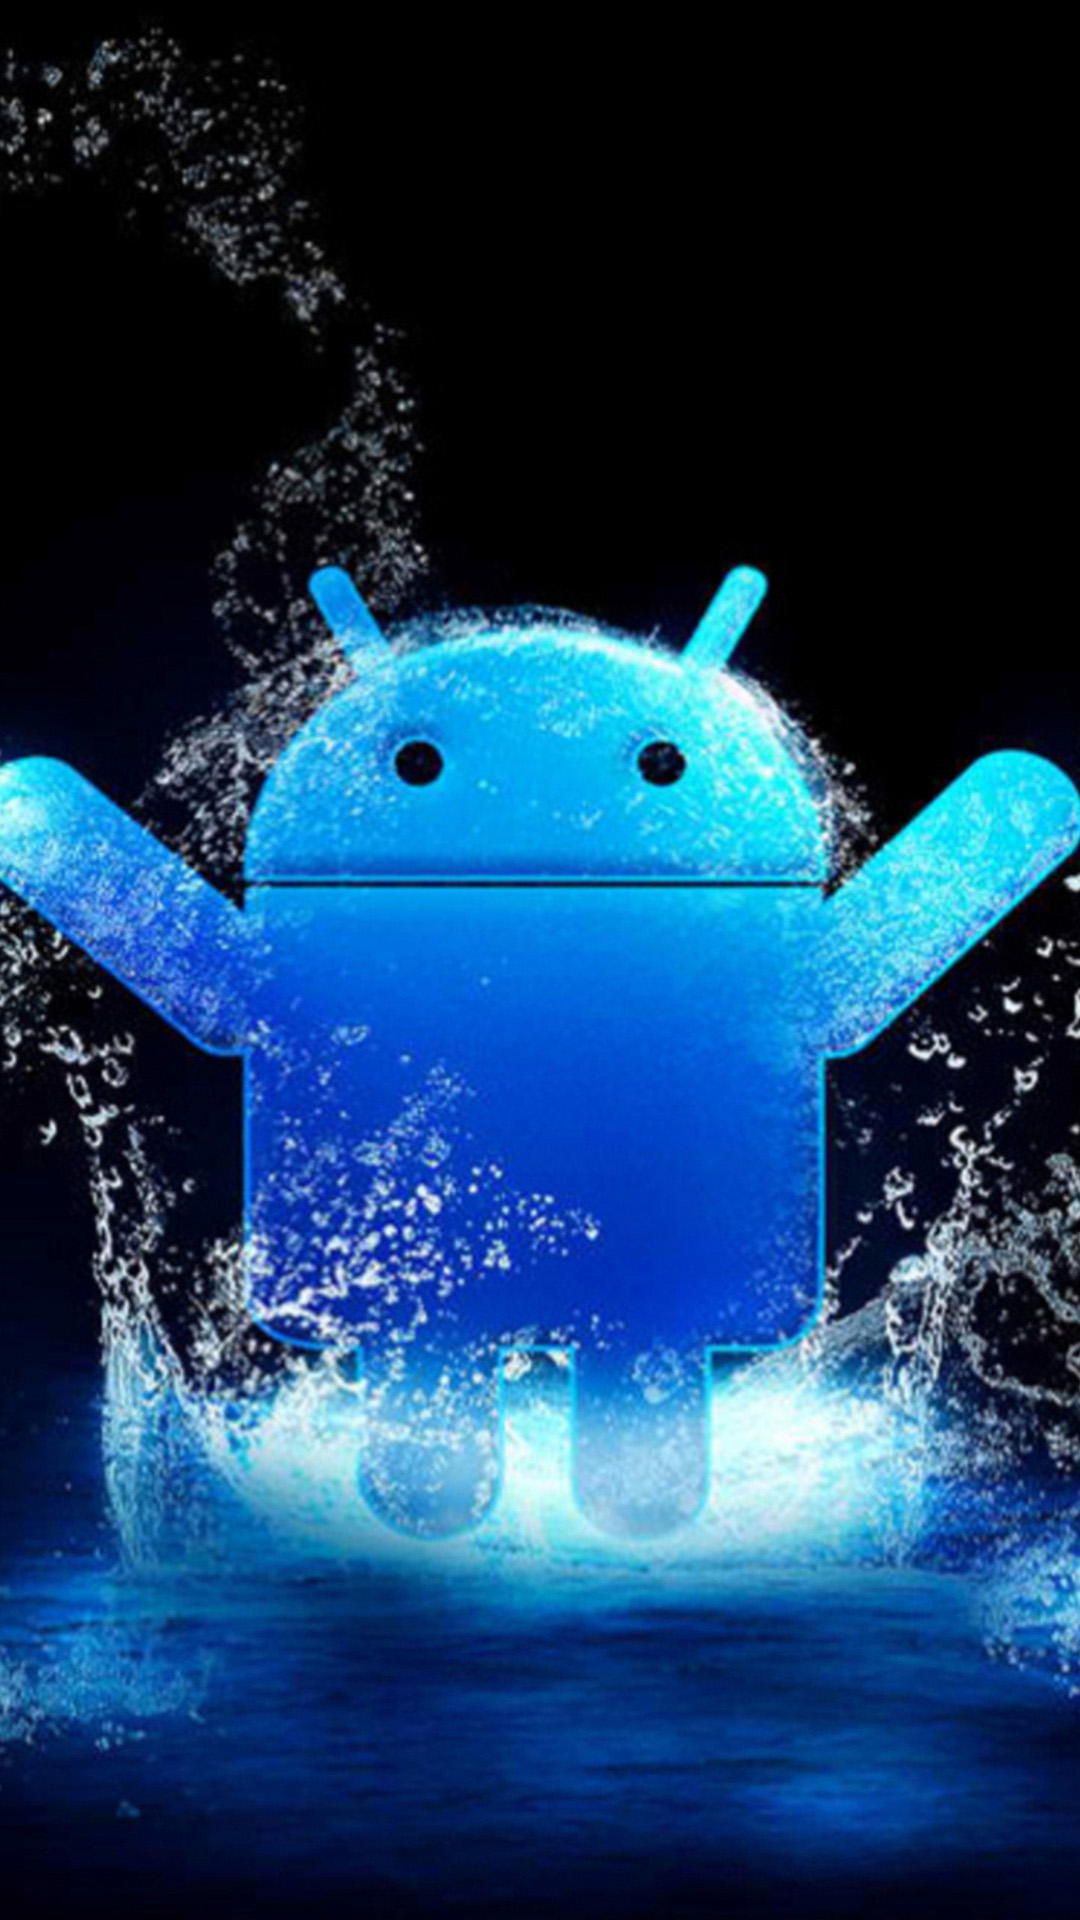 Android happy splash smartphone wallpapers hd getphotos - Wallpapers android hd ...